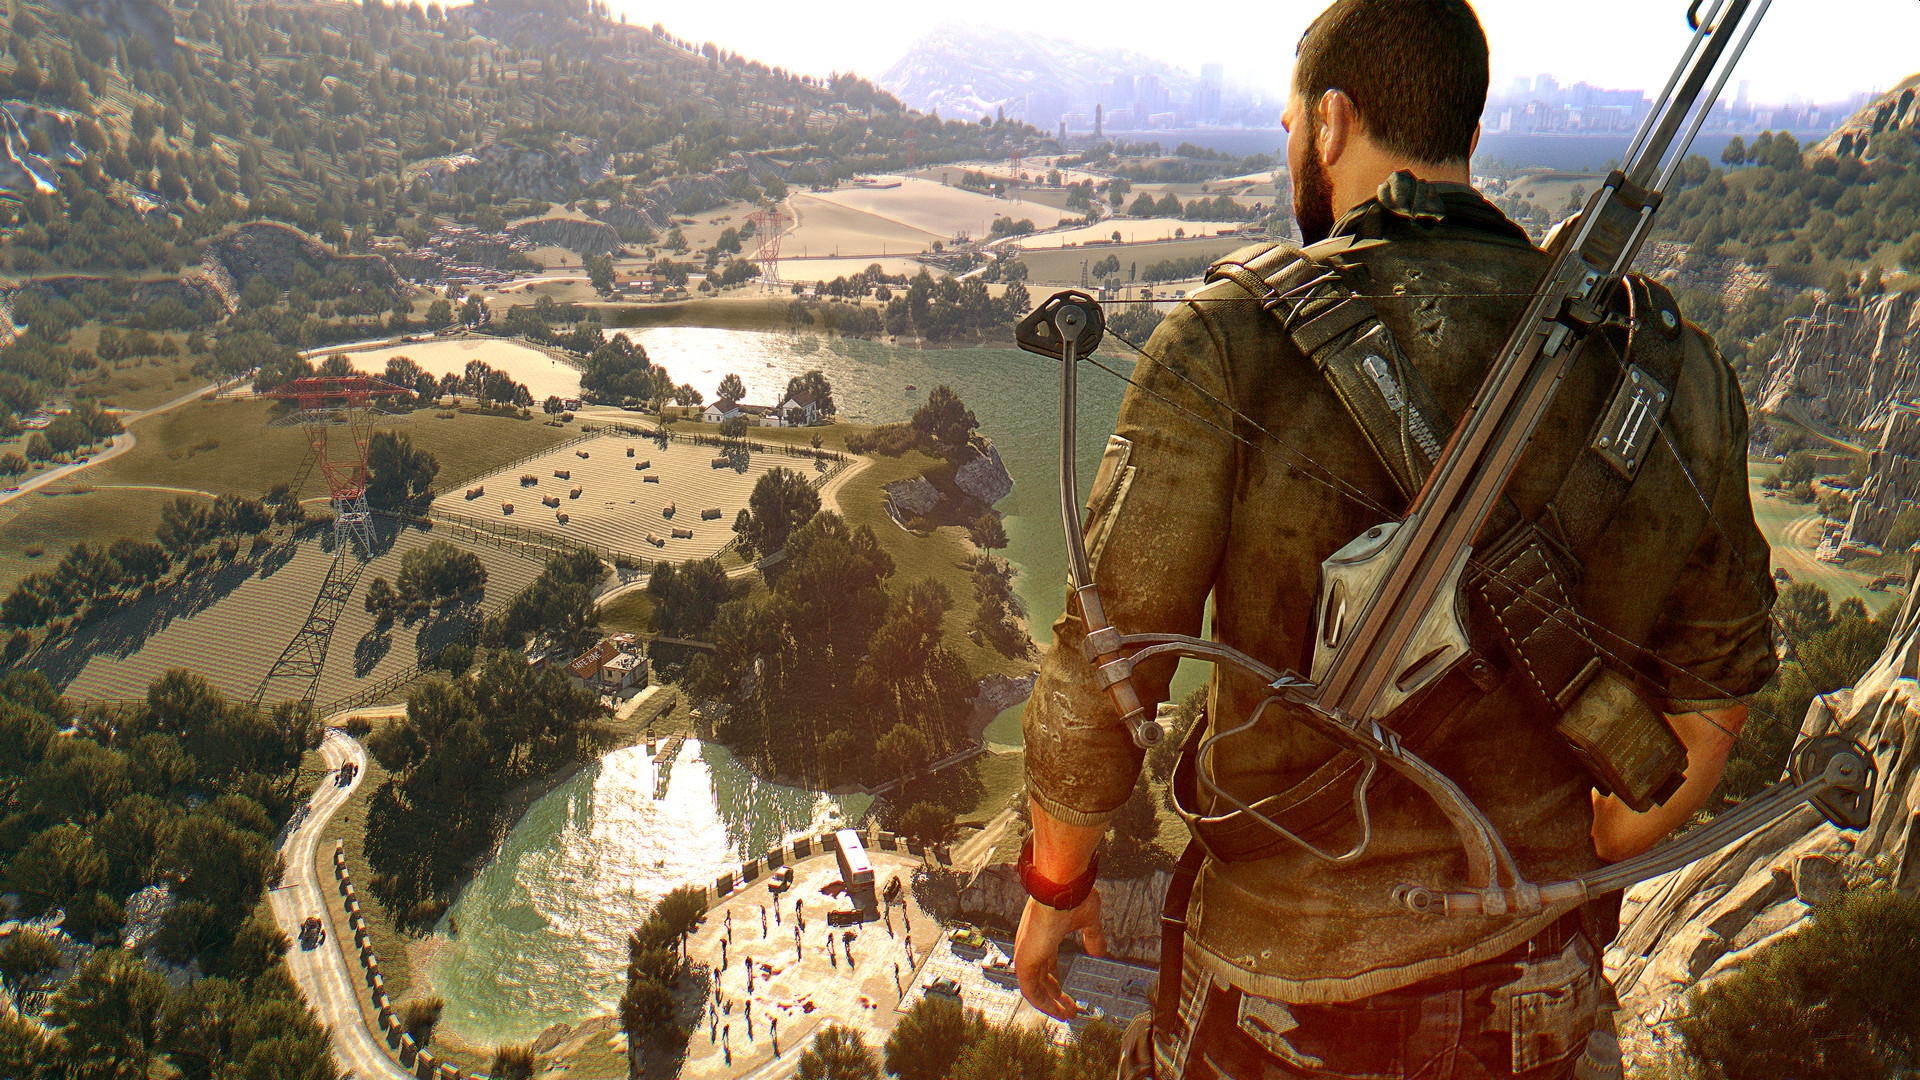 Dying Light Anniversary Edition For PlayStation 4 And Xbox One Launches On December 8